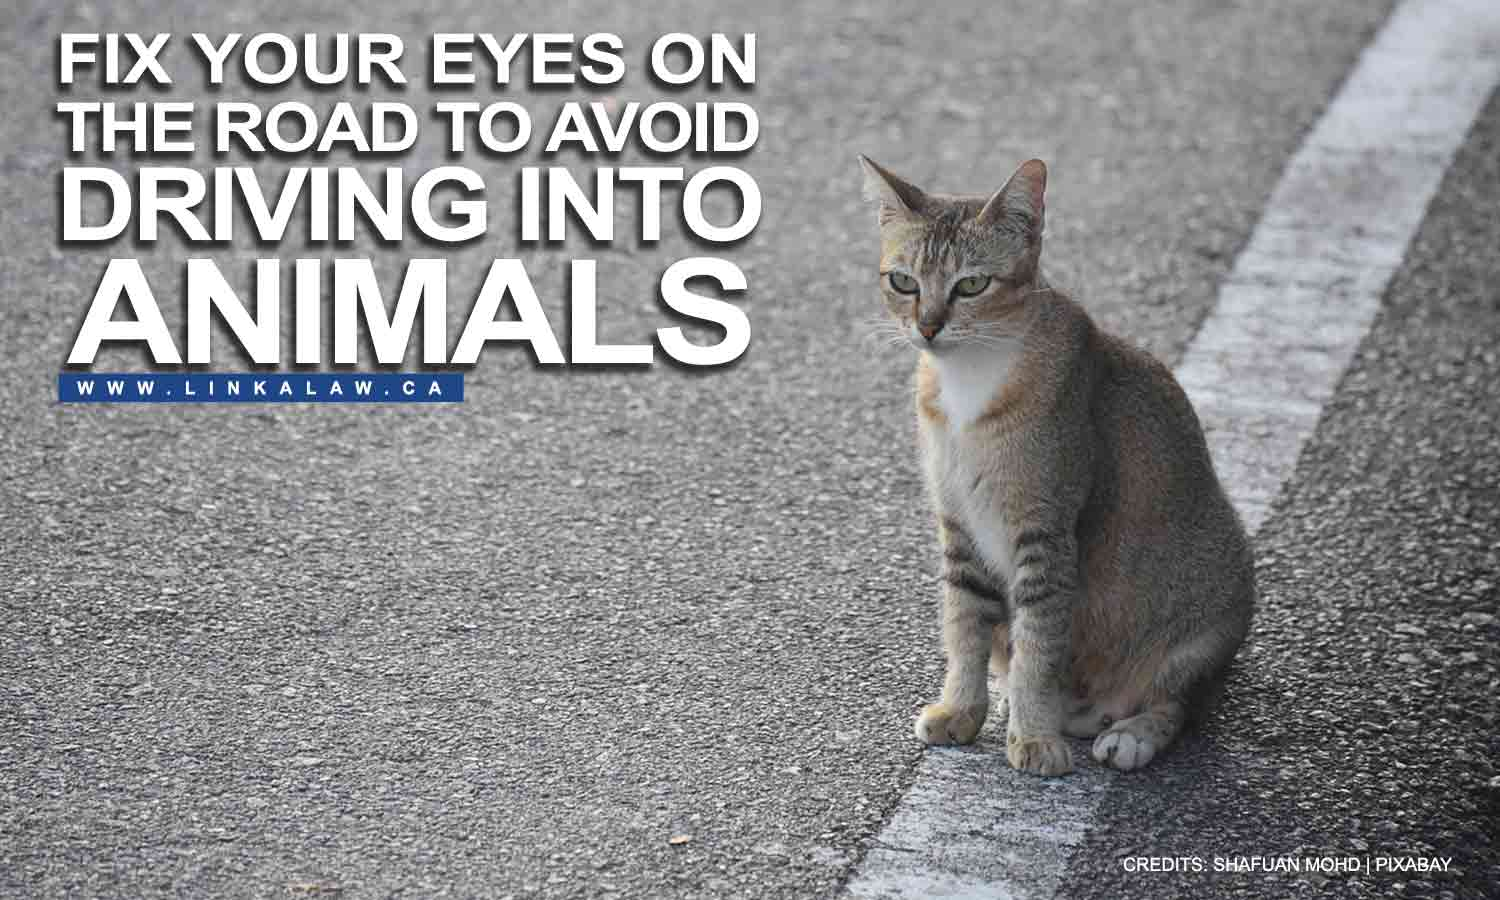 Fix your eyes on the road to avoid driving into animals